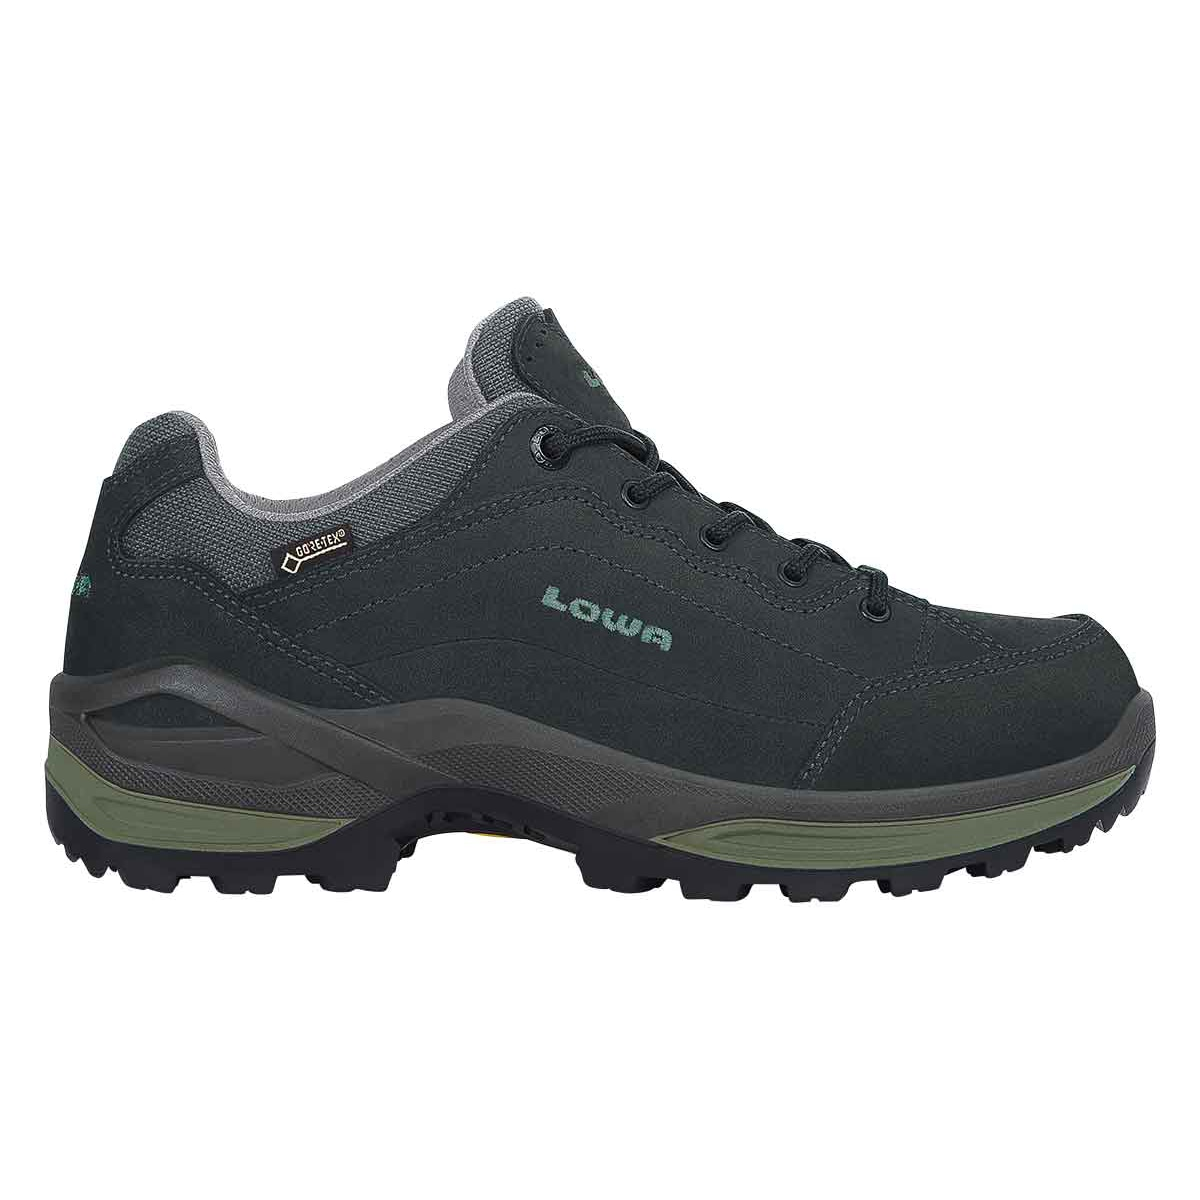 Renegade GTX Lo - Women's